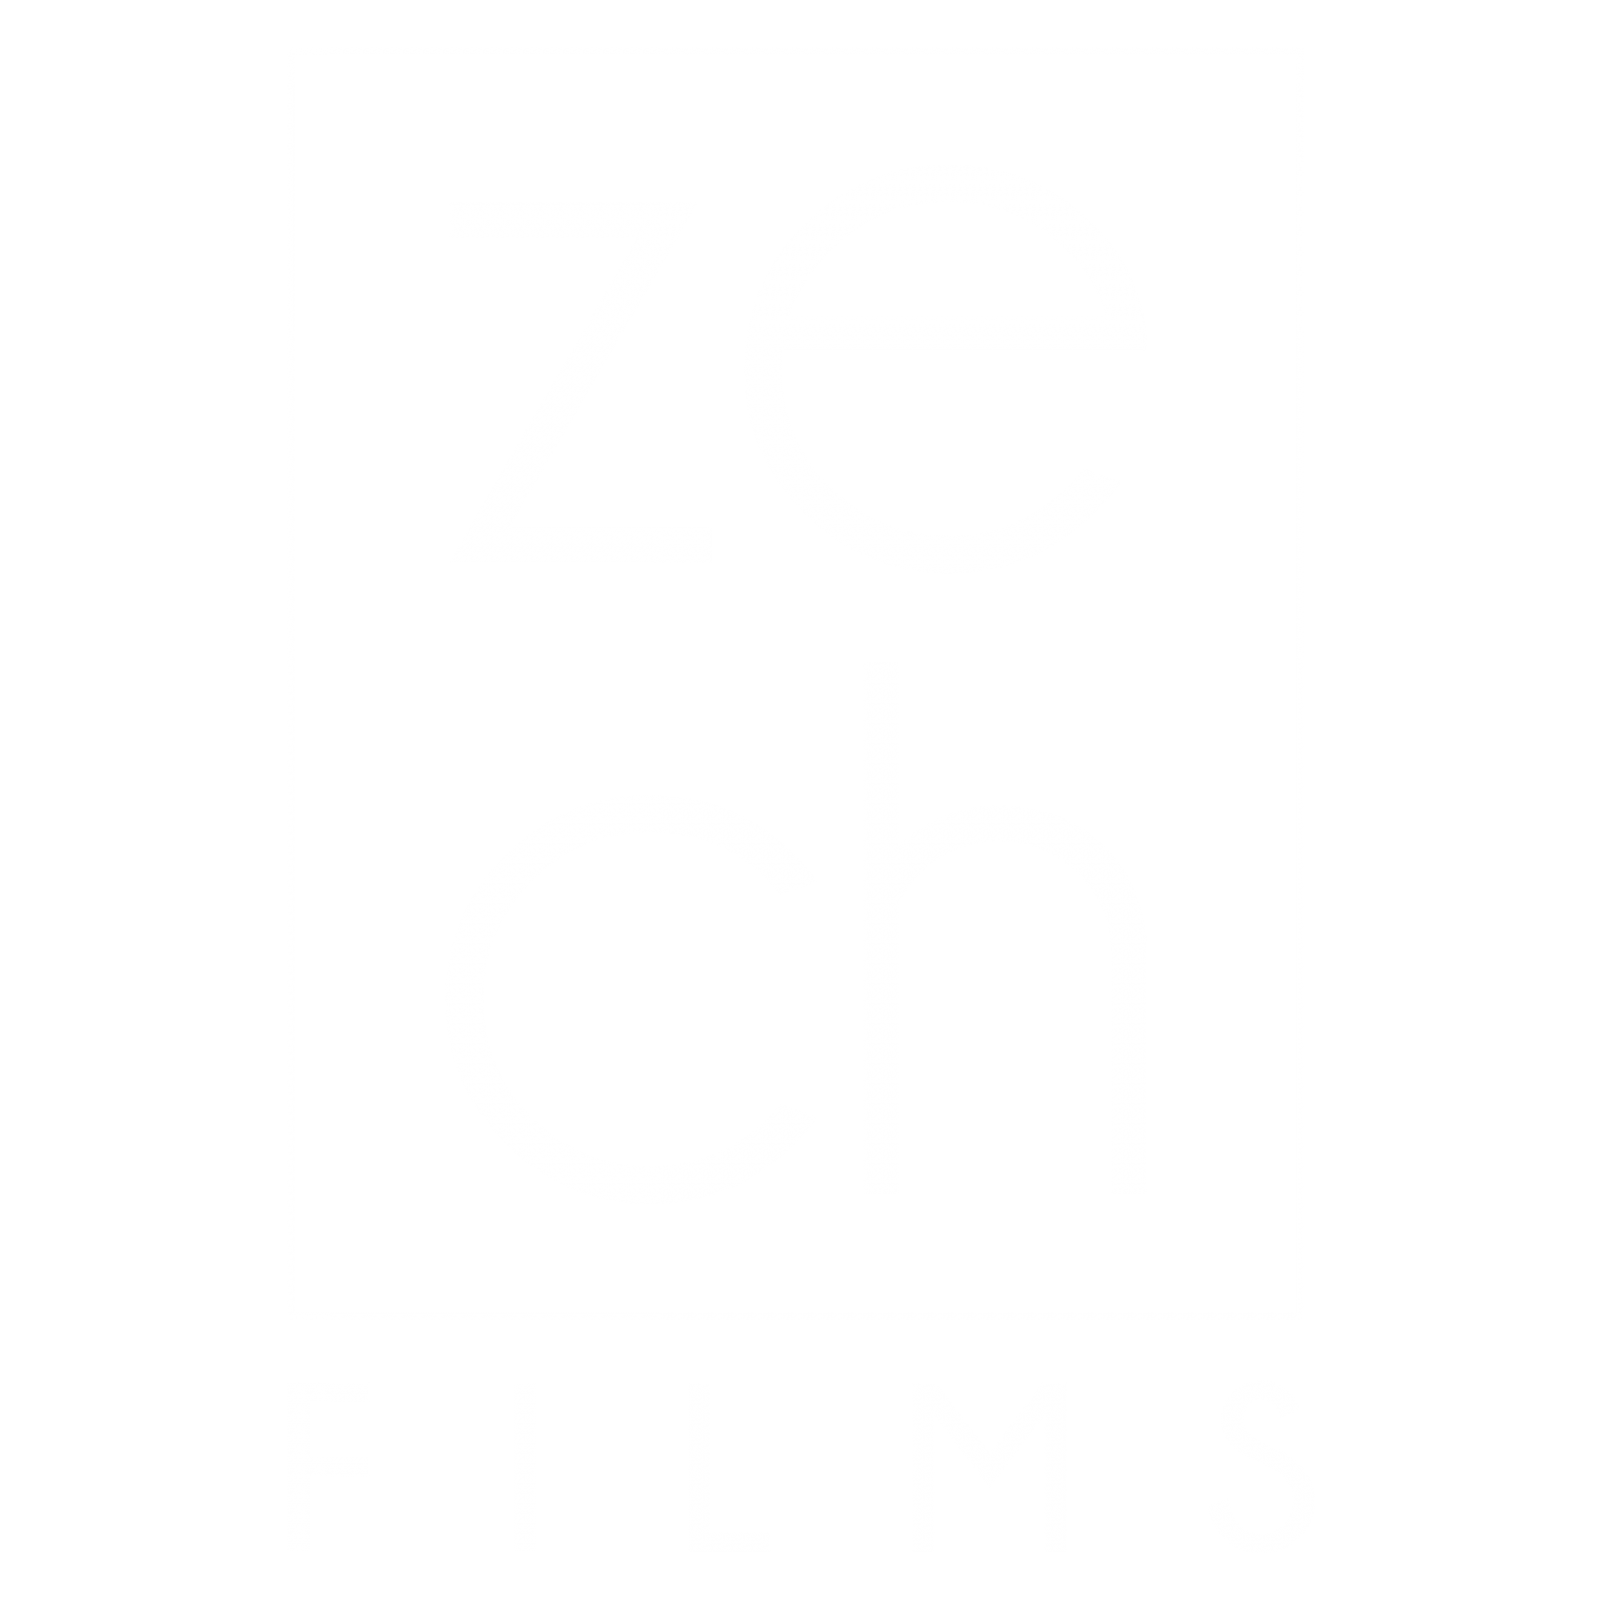 Zech film Inverse Logo Web Design, Digital Marketing, E-Commerce, Branding, Creative Design, Website Maintenance., Training Services, Migher World